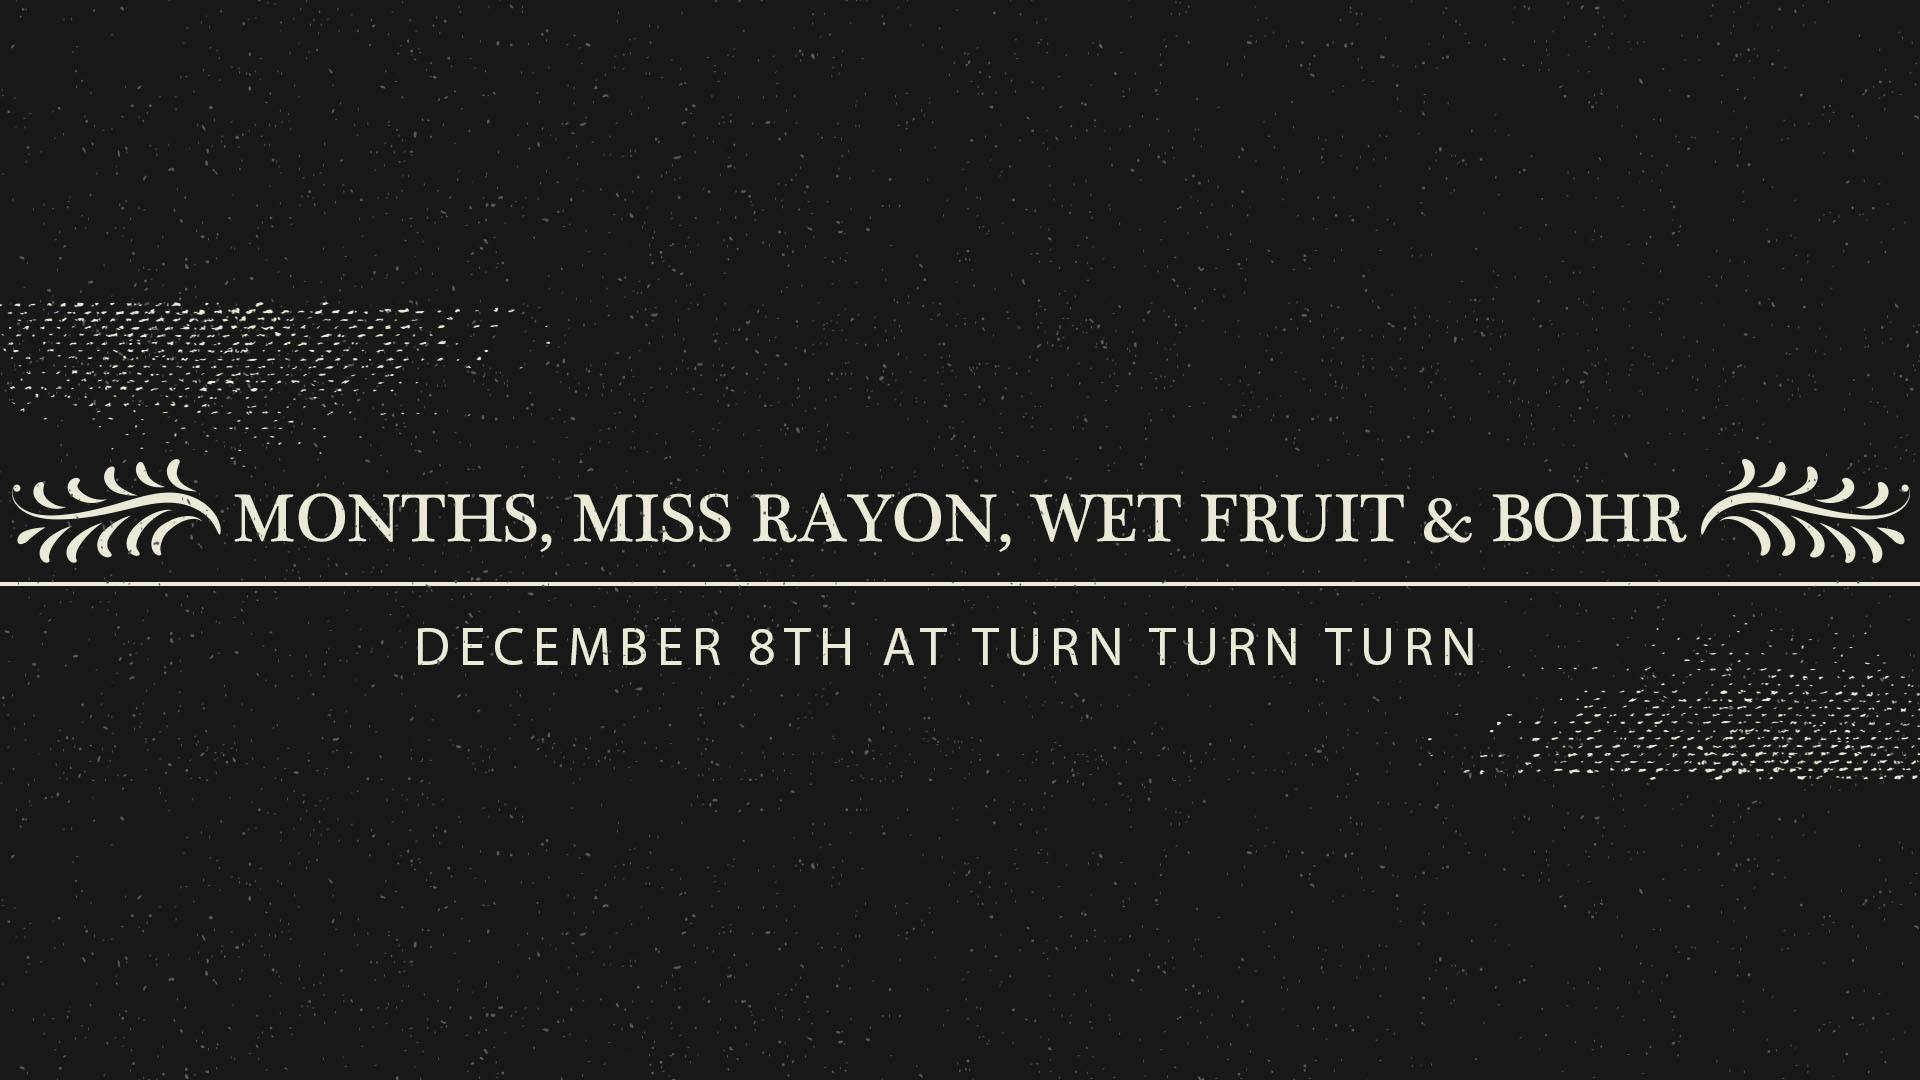 months plays turn turn turn on december 8 with miss rayon, wet fruit, and bohr